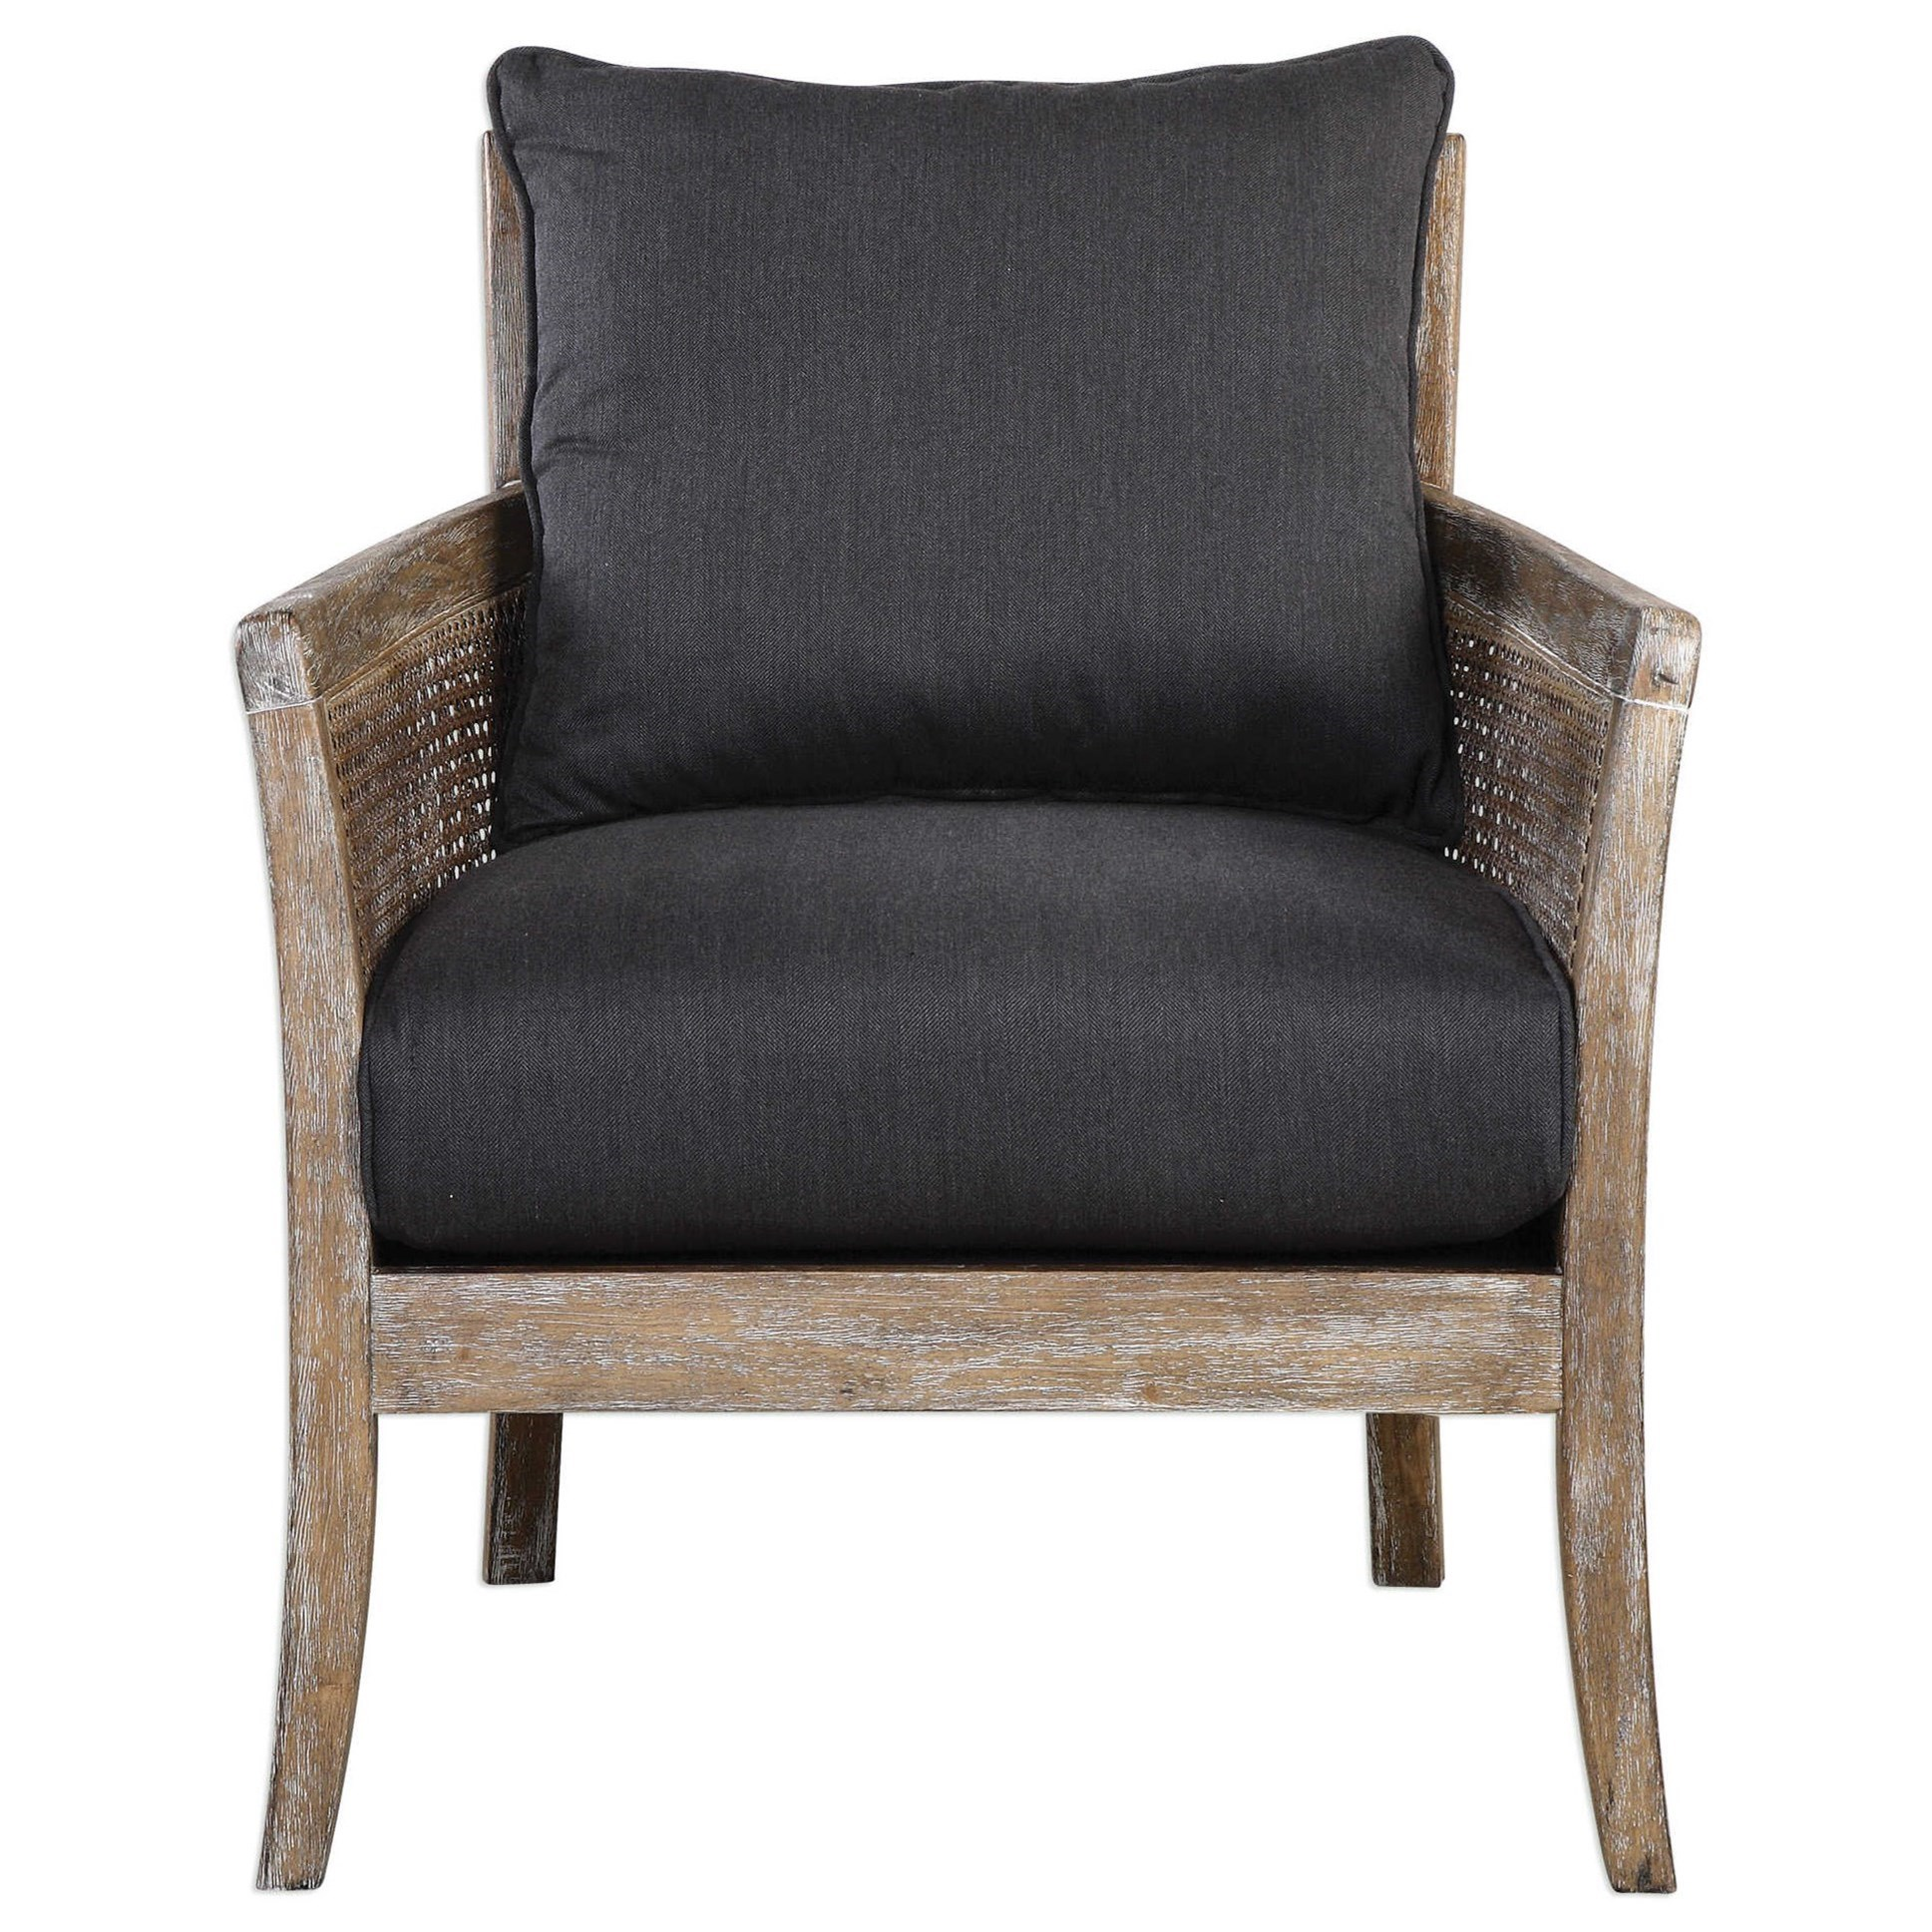 Accent Furniture - Accent Chairs Encore Dark Gray Armchair by Uttermost at O'Dunk & O'Bright Furniture